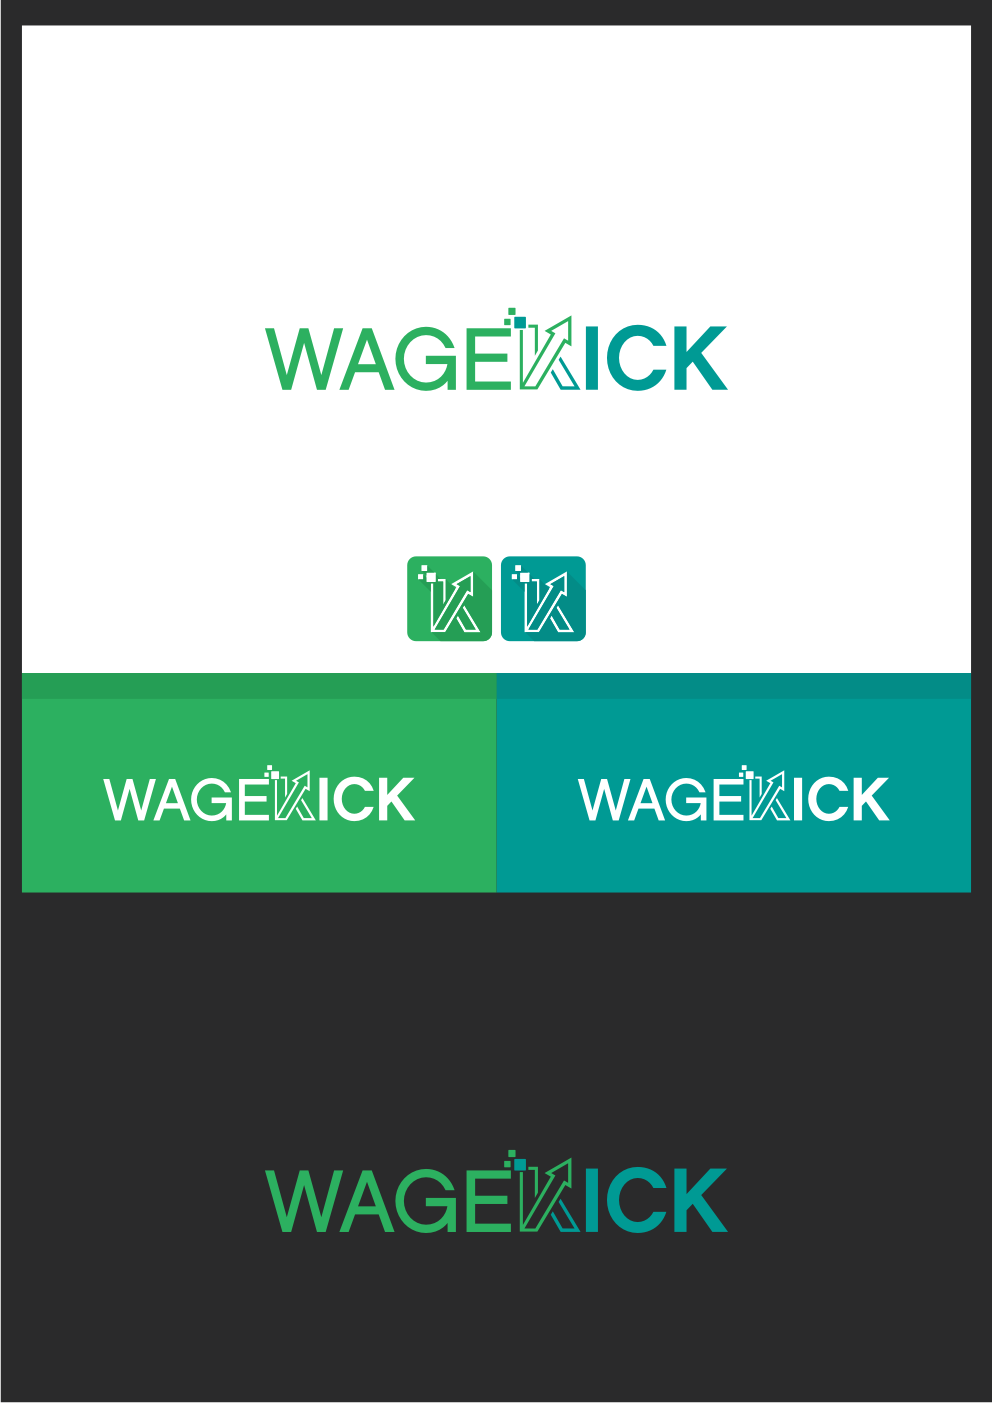 Create a logo that helps WageKick stand out in the job market